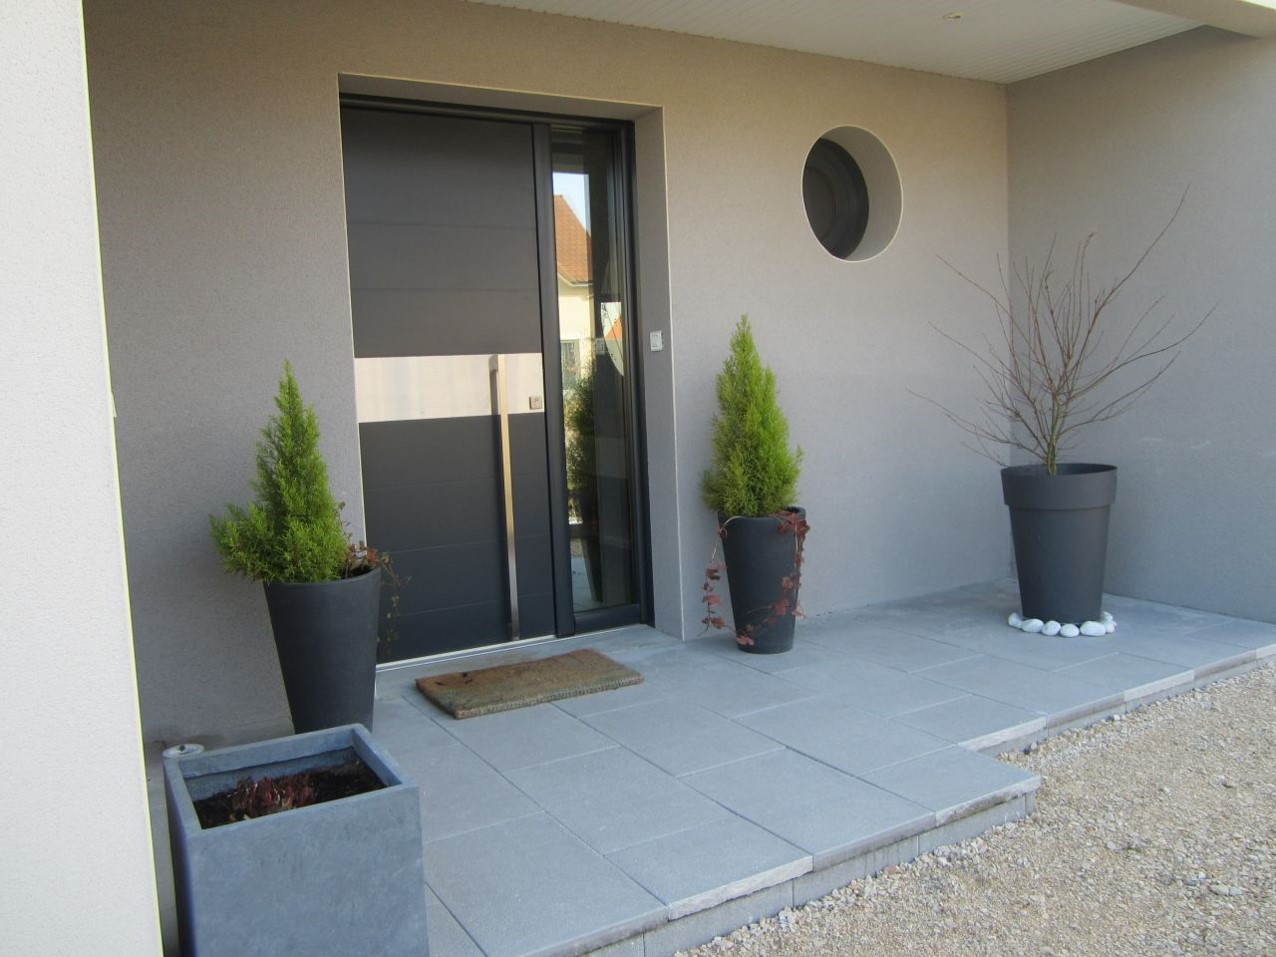 How To Upgrade Your Home's Entrance & Increase Curb Appeal